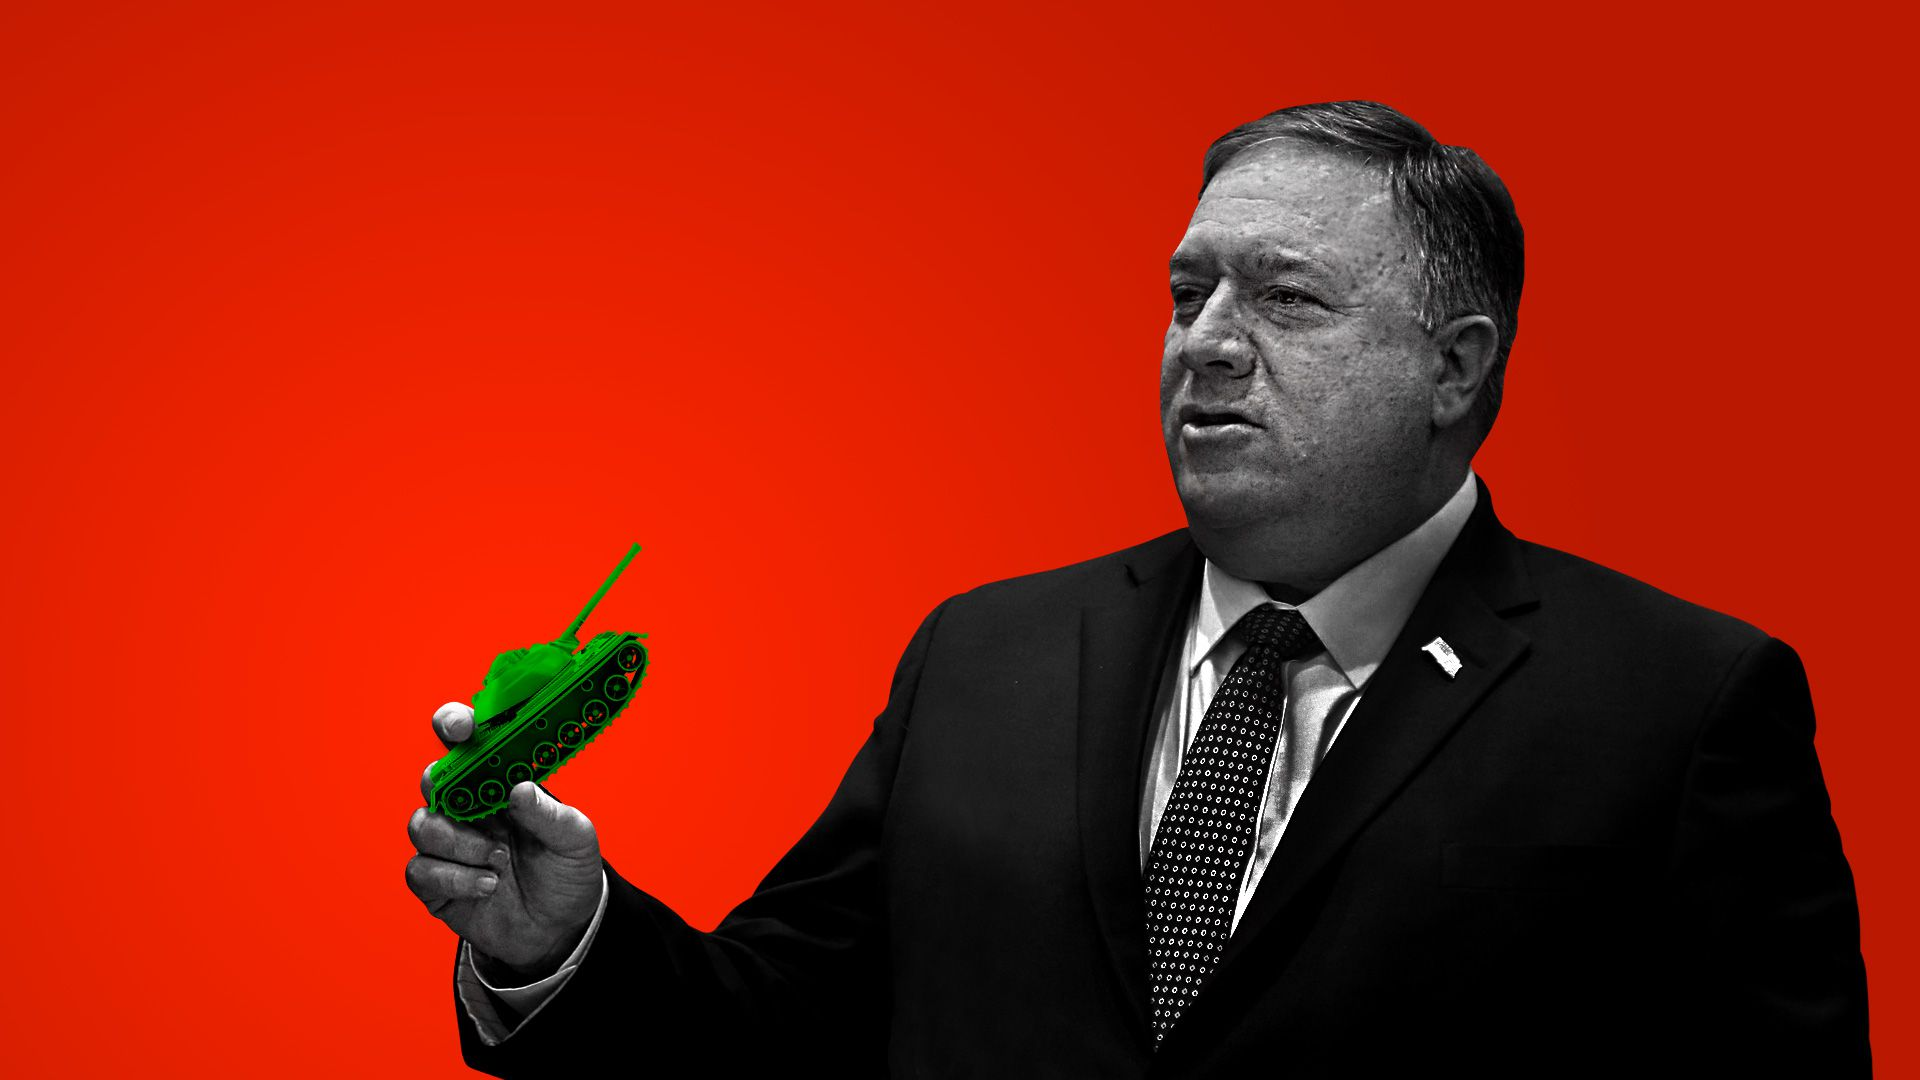 Mike Pompeo holding a miniature tank